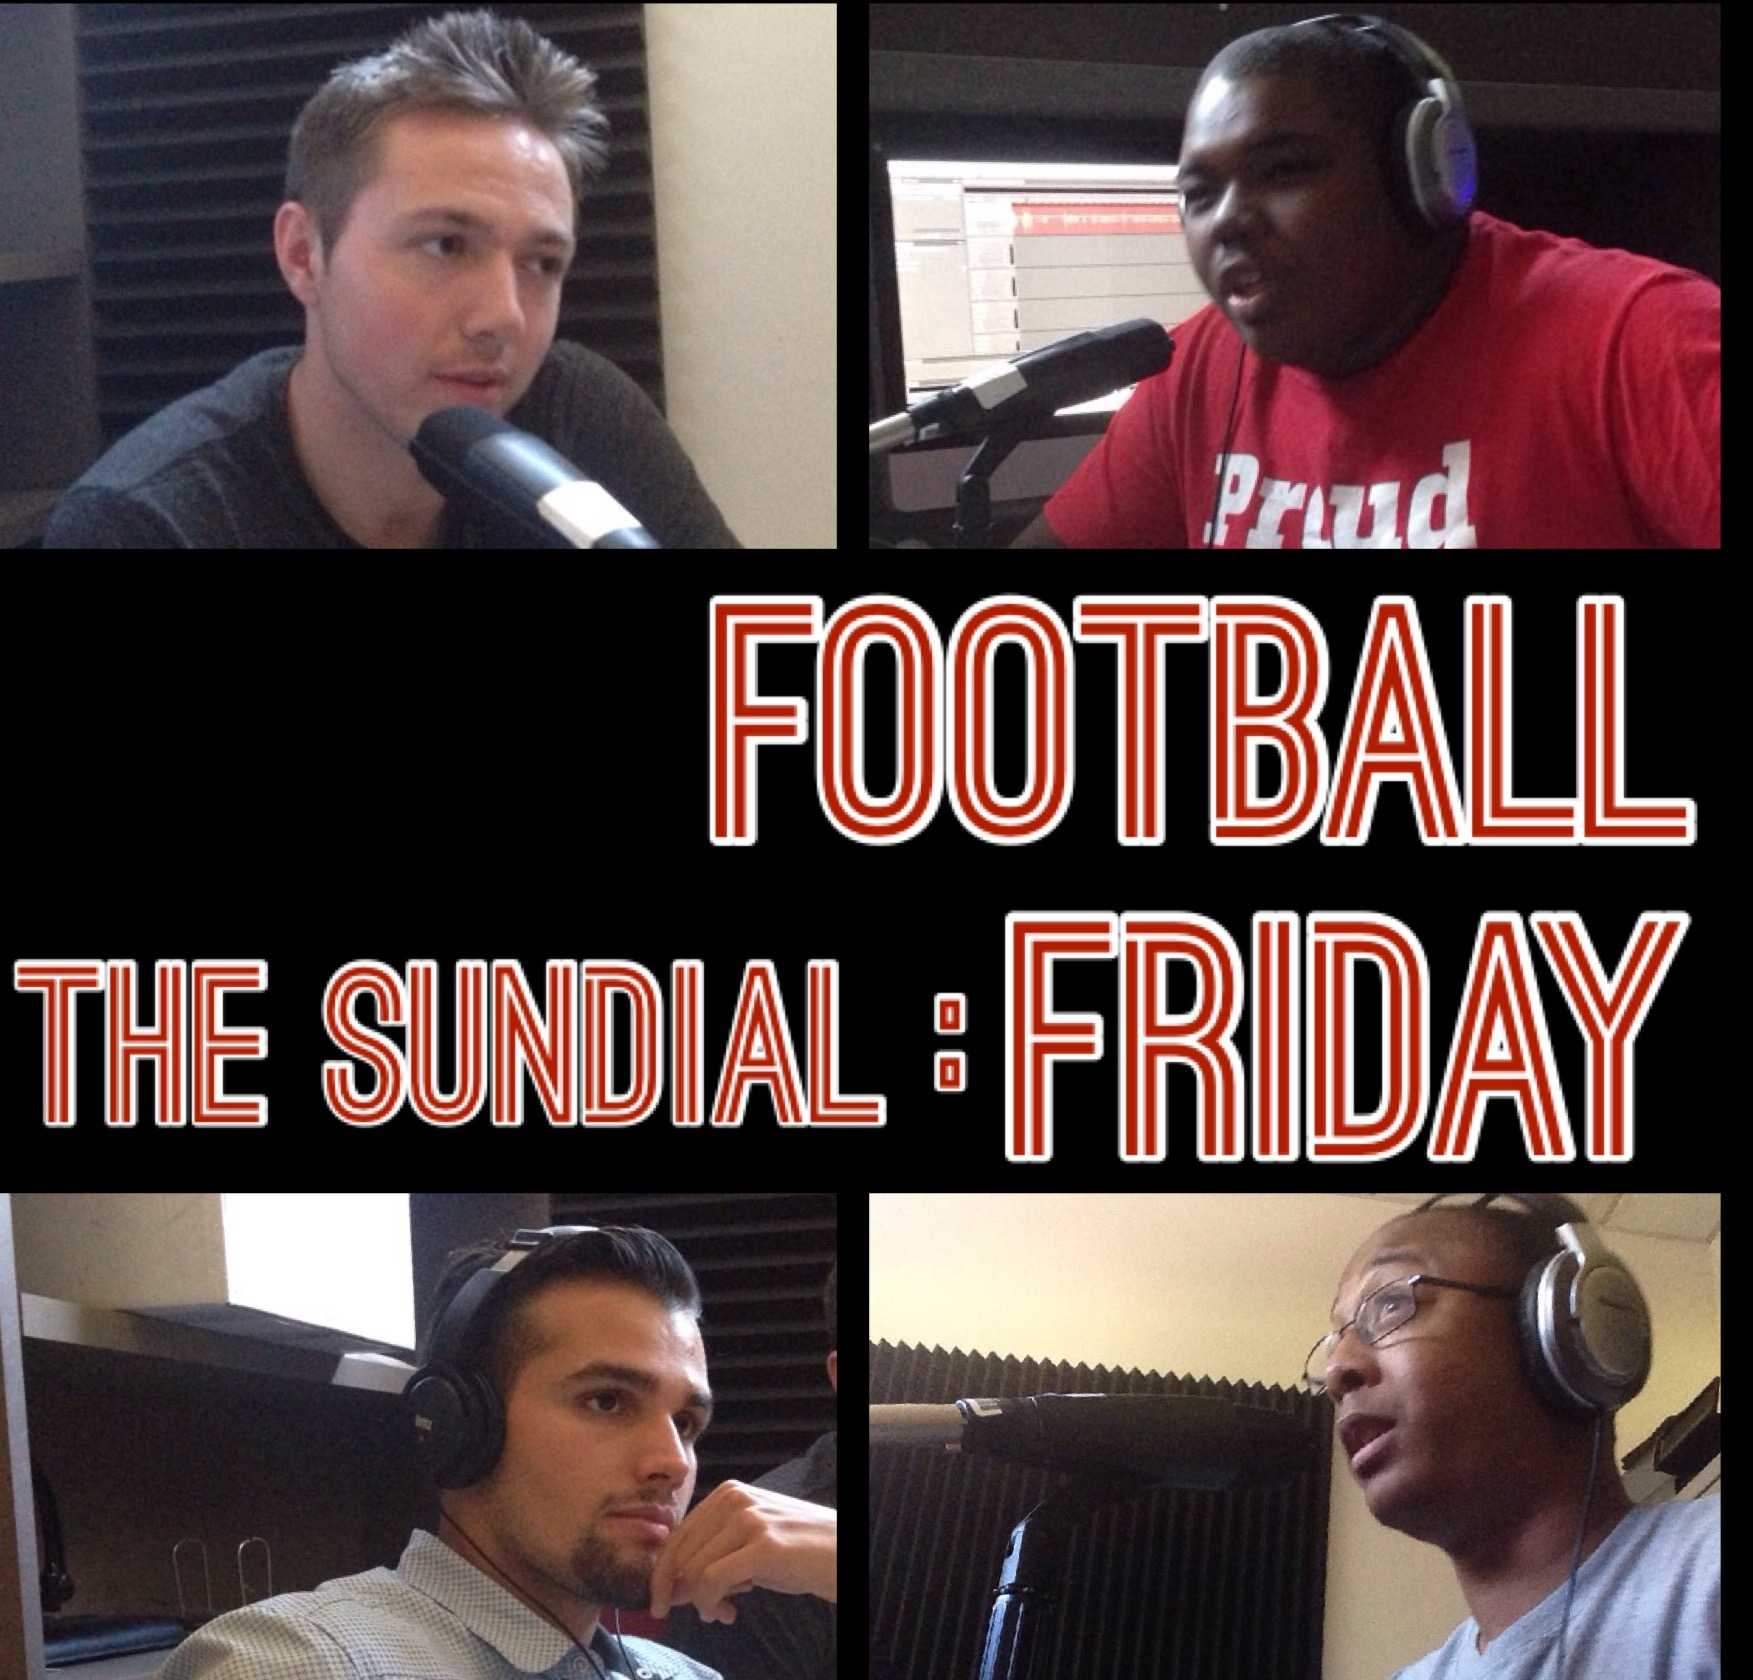 Football Friday Episode 8: The Latest & Greatest